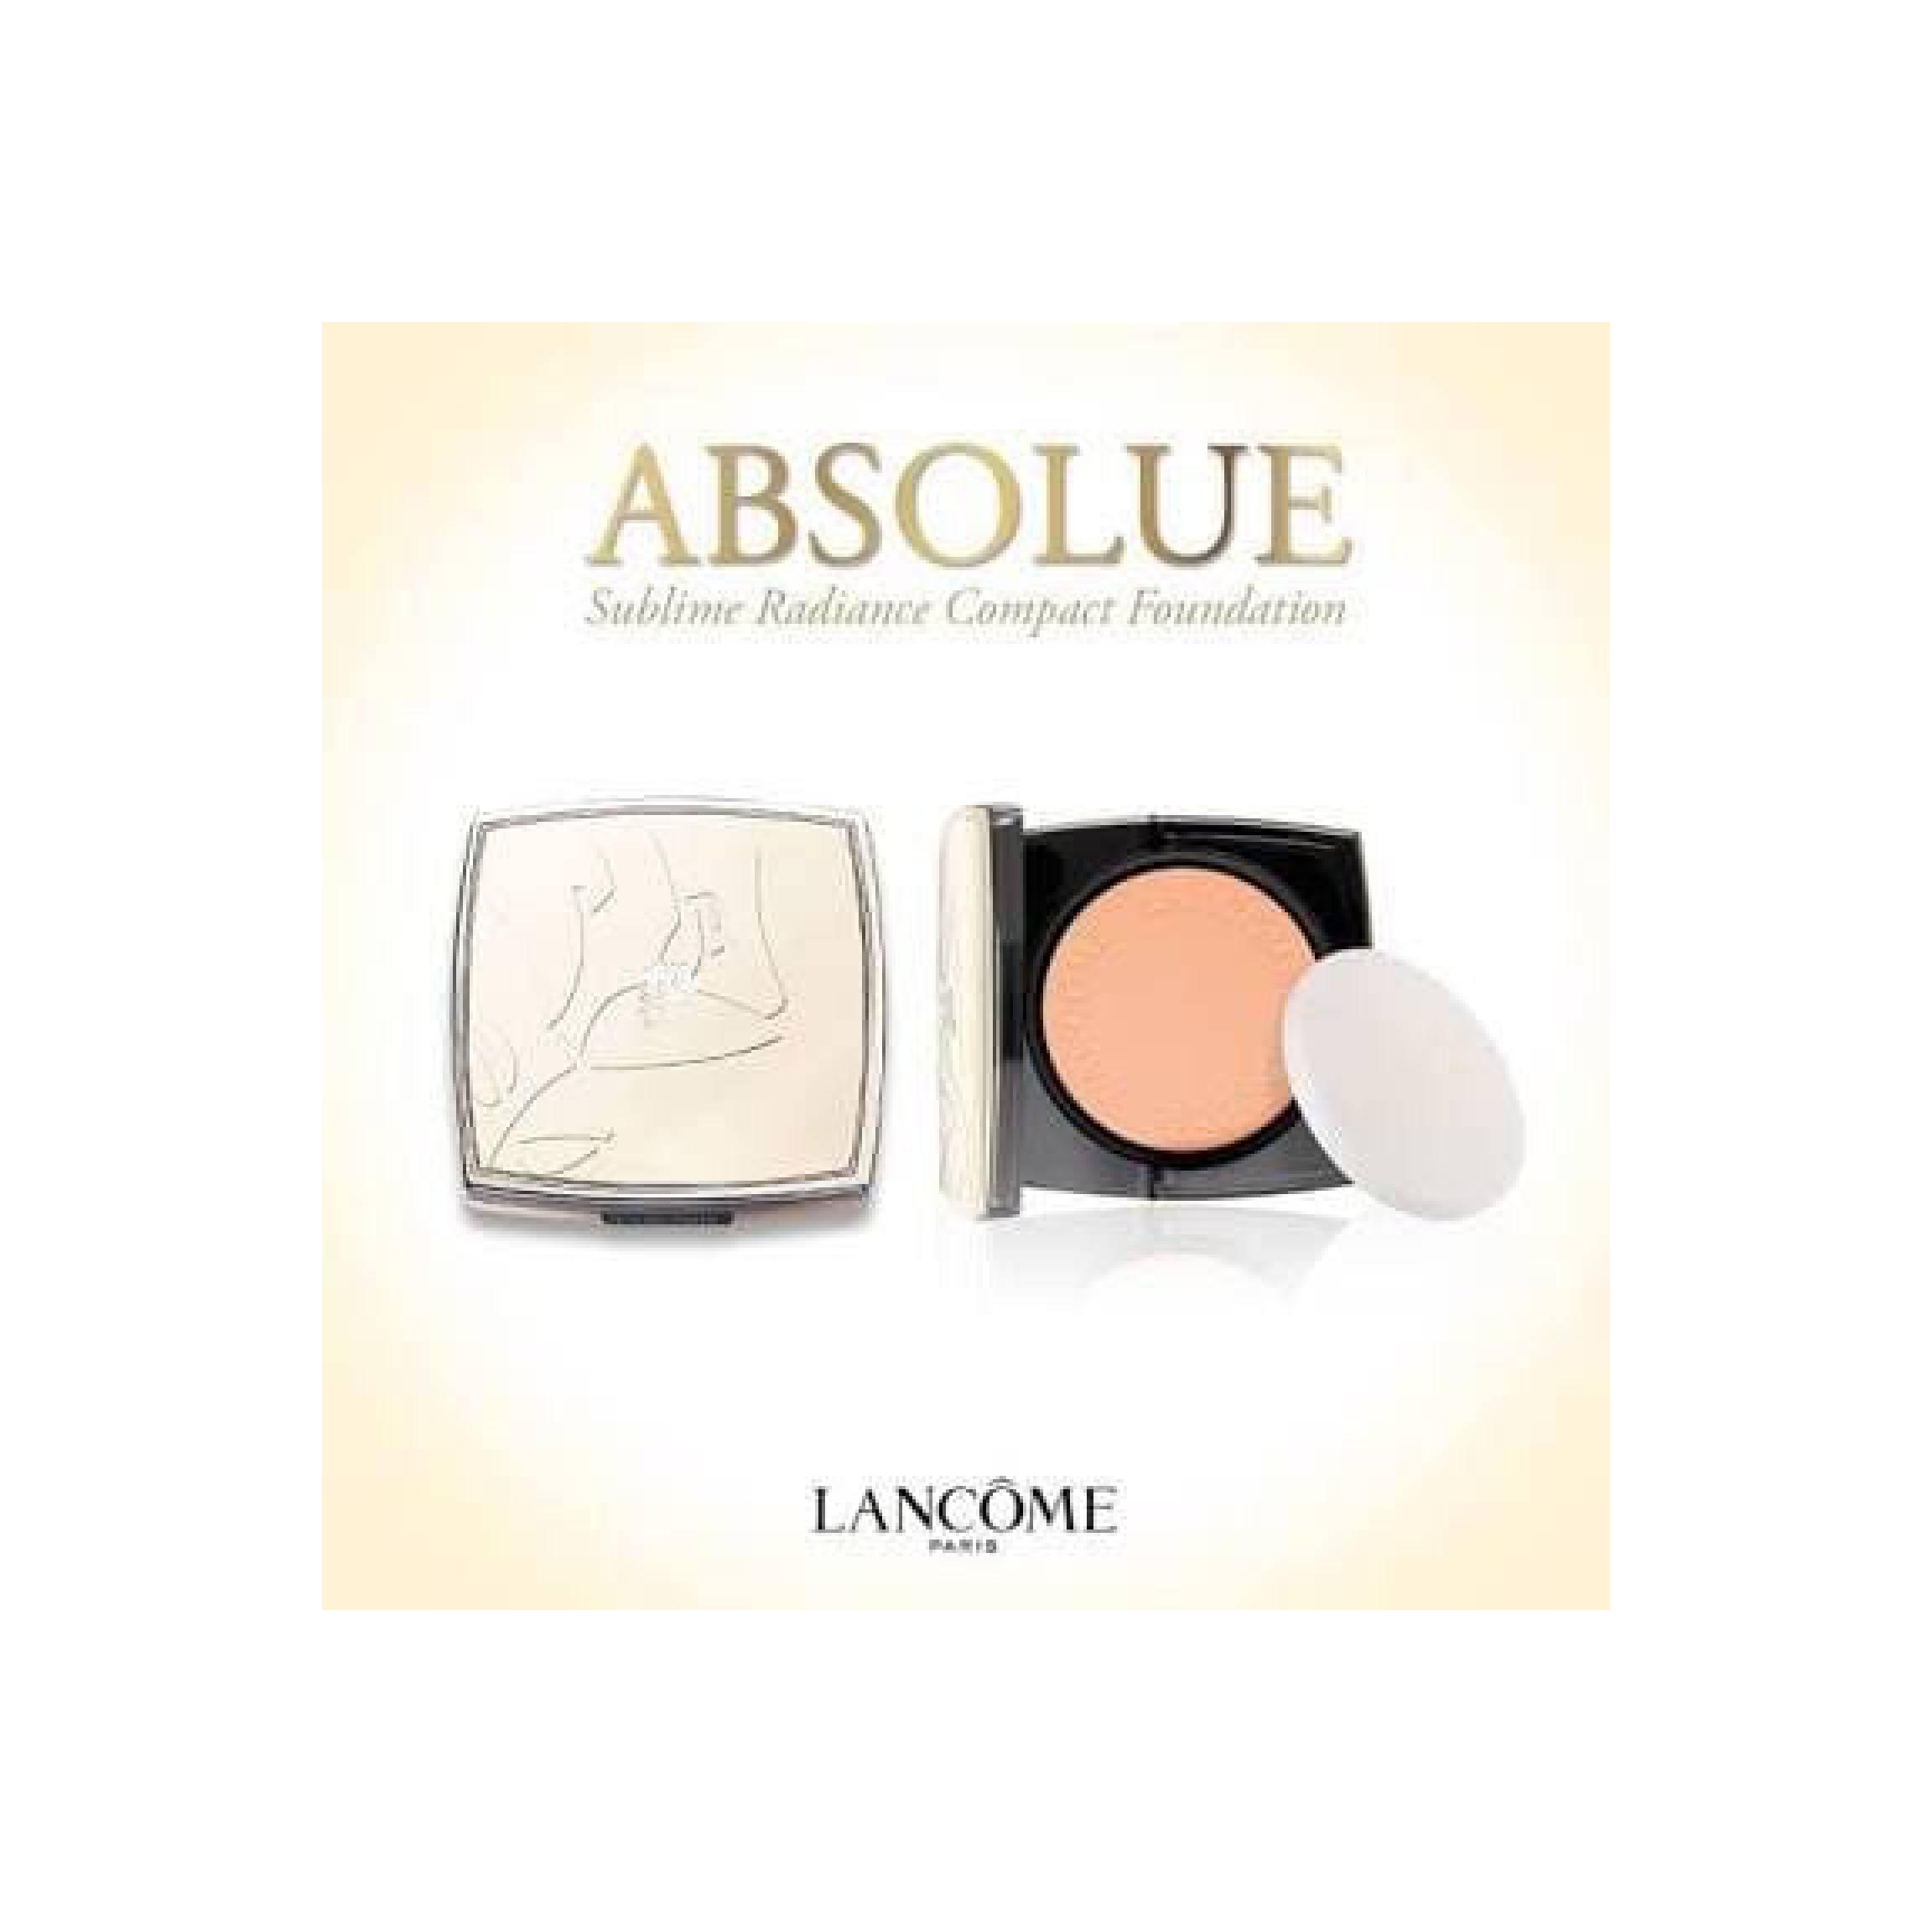 LANCOME Absolue Sublime Compact Foundation #210